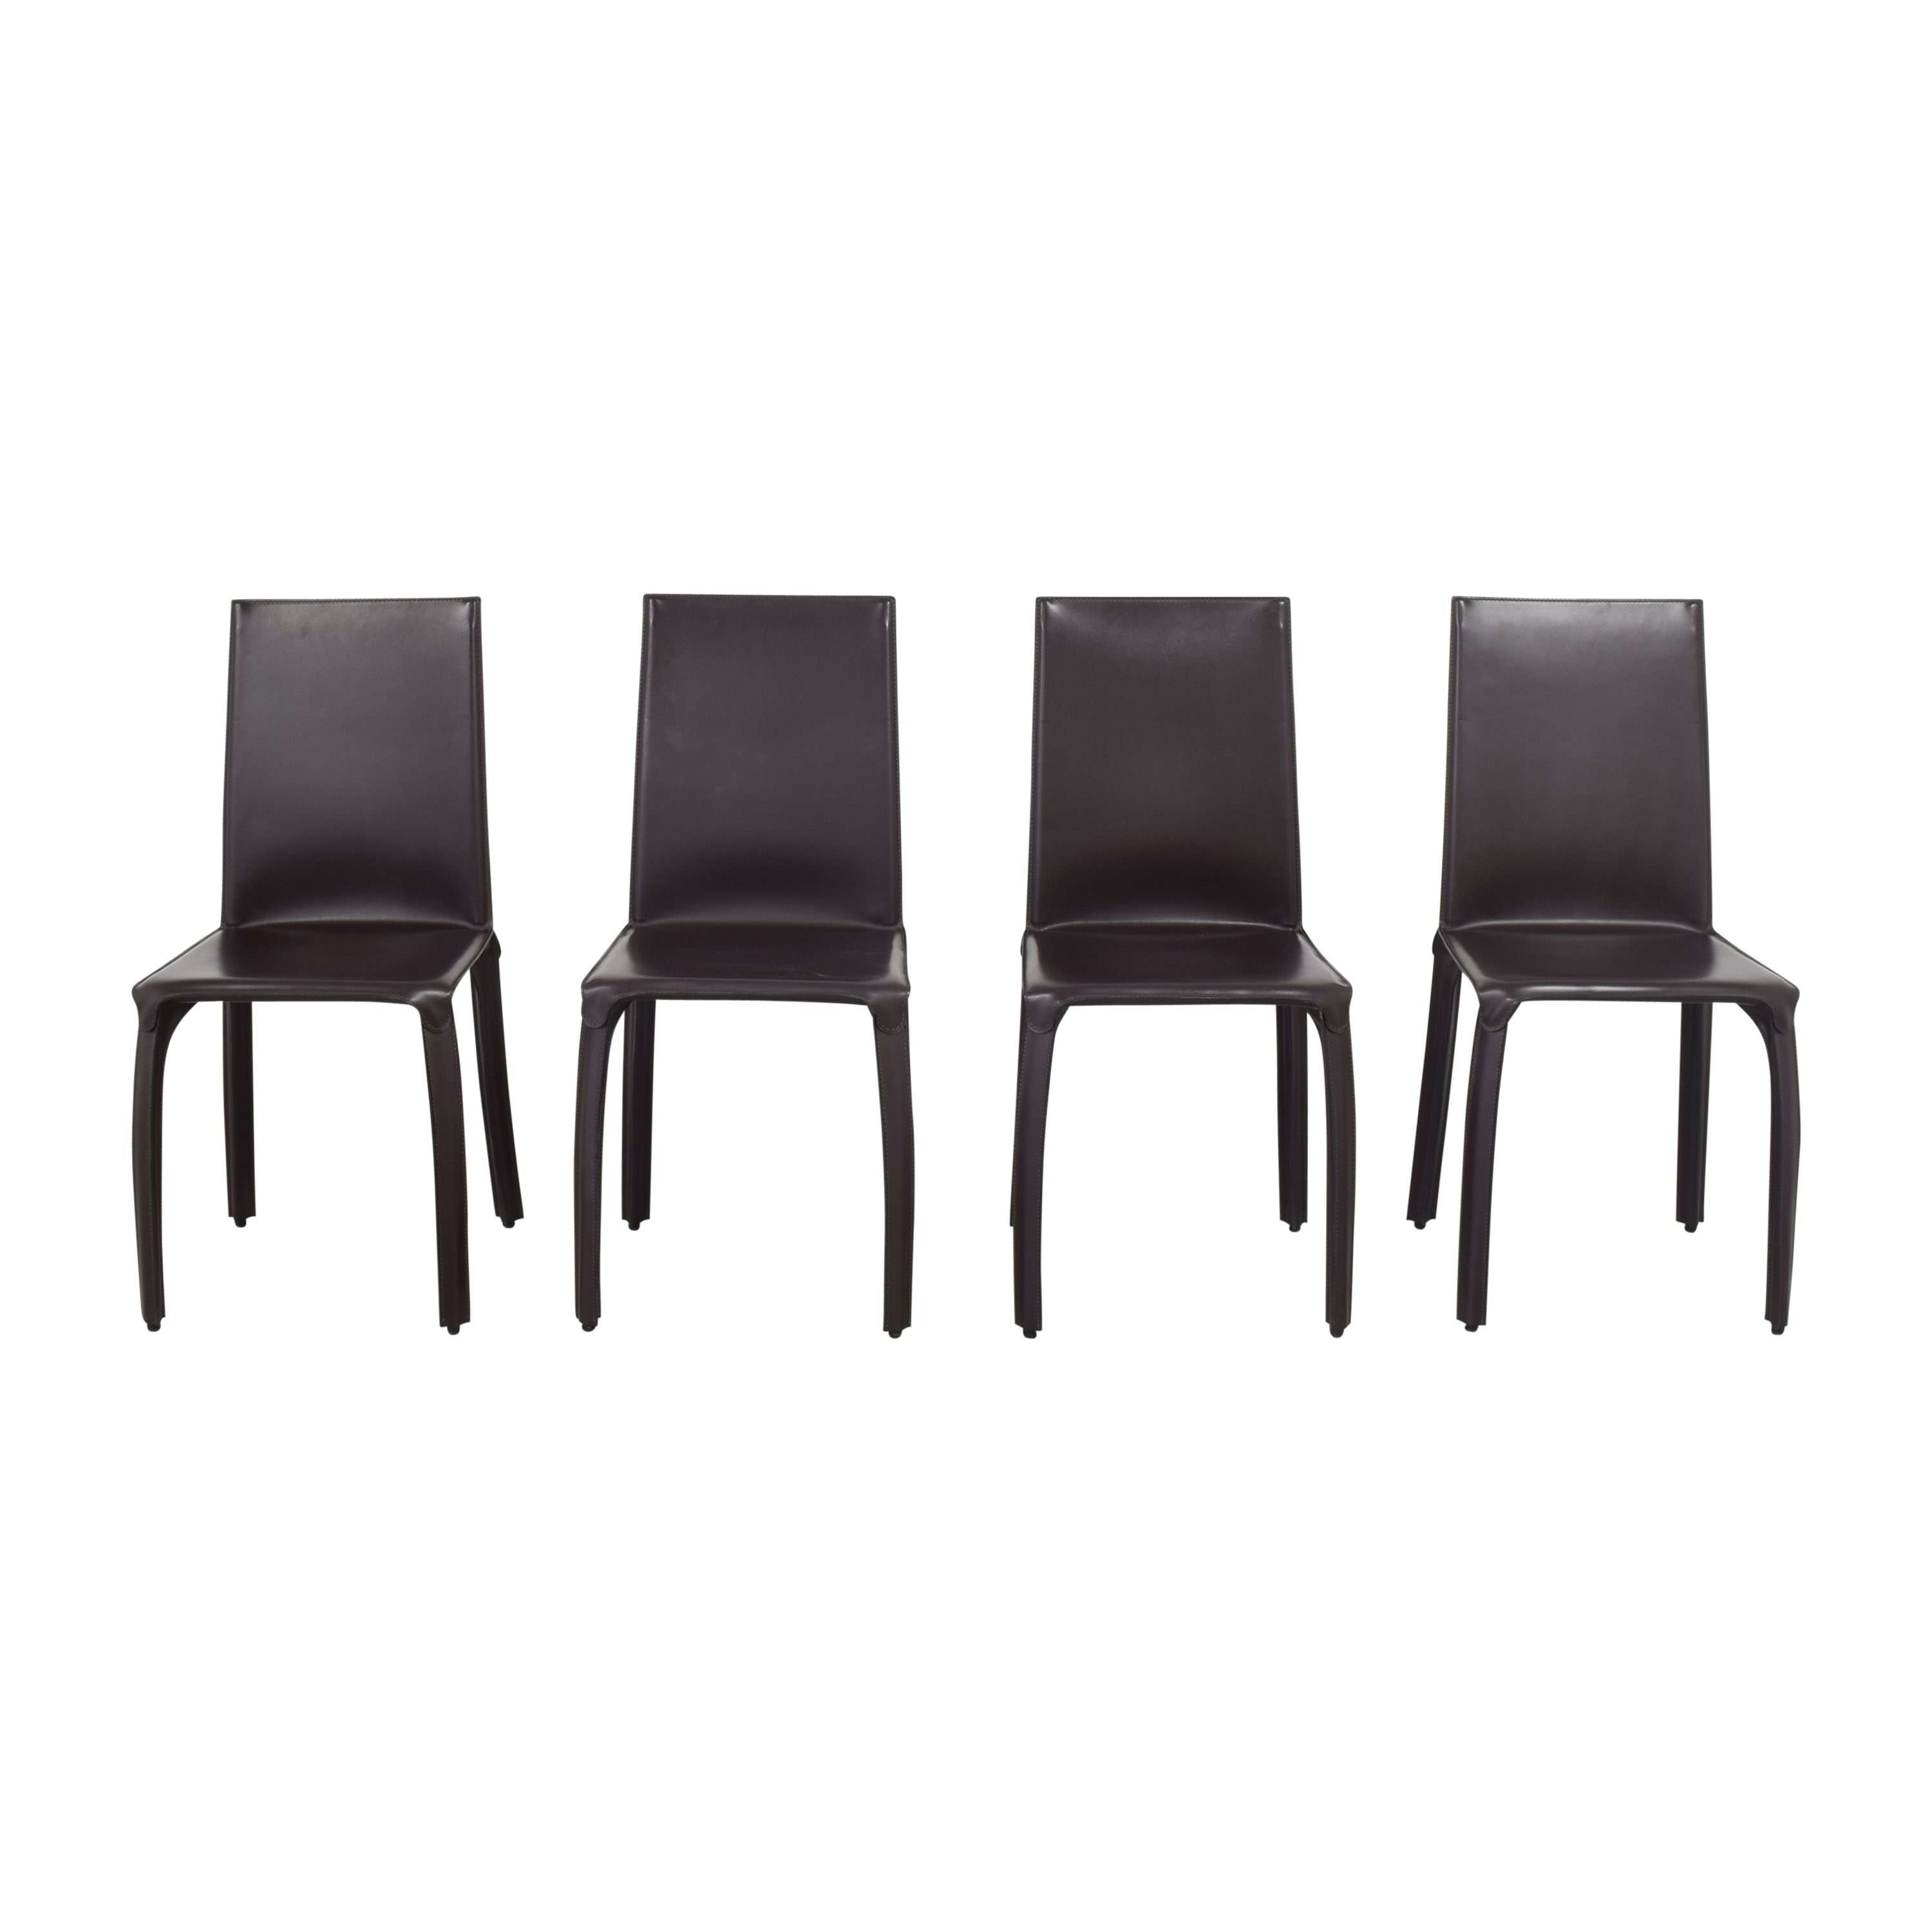 Crate & Barrel Folio Dining Chairs by Maria Yee / Chairs